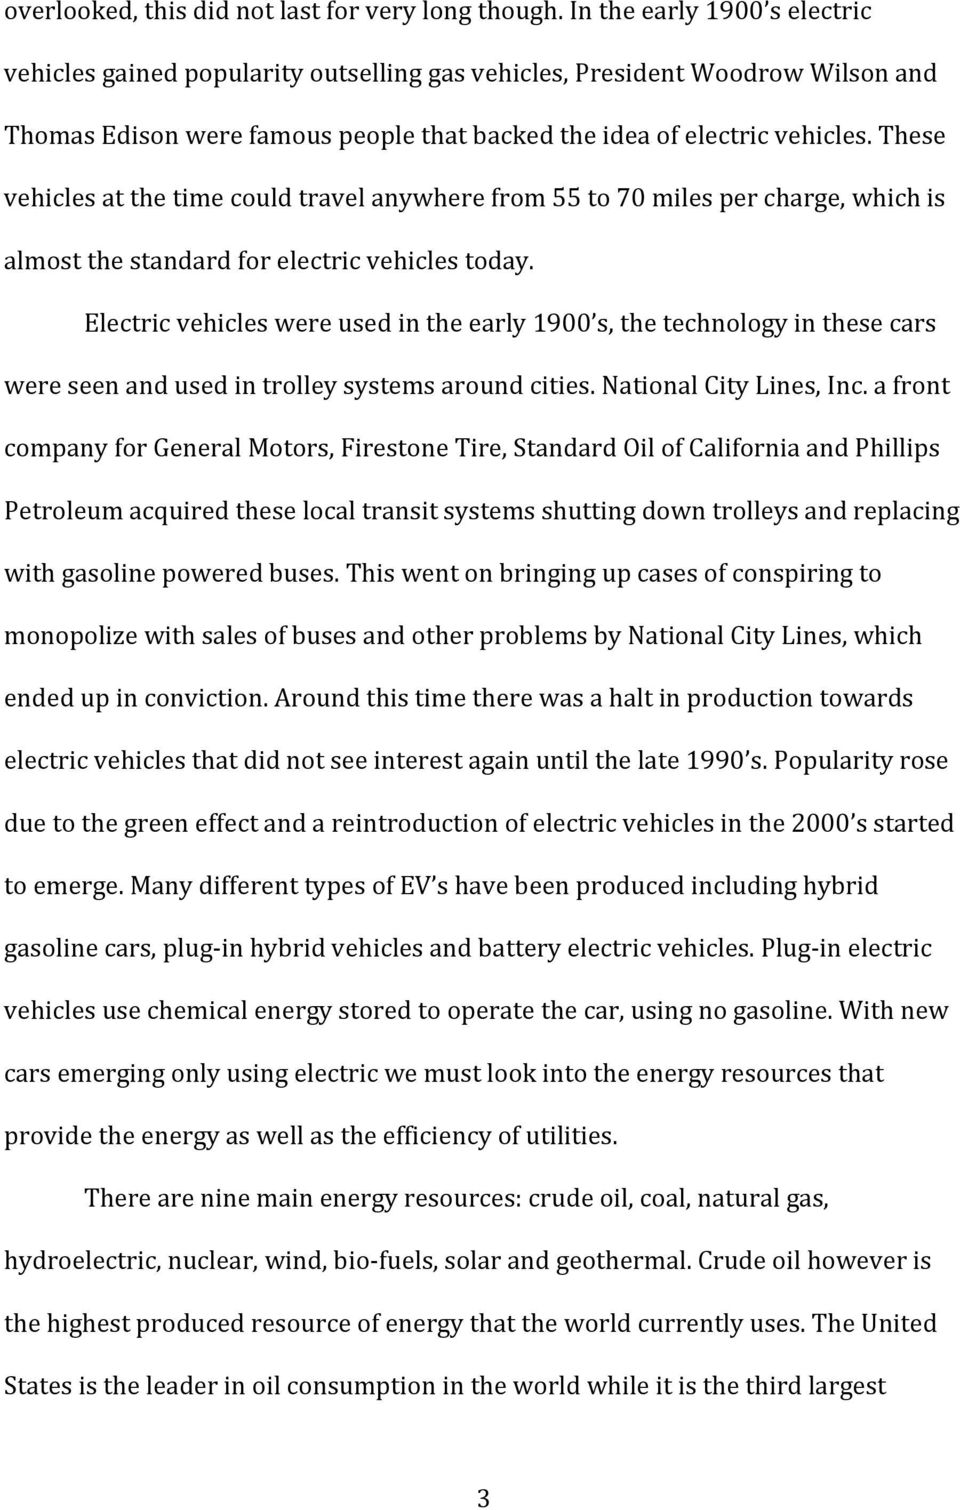 These vehicles at the time could travel anywhere from 55 to 70 miles per charge, which is almost the standard for electric vehicles today.